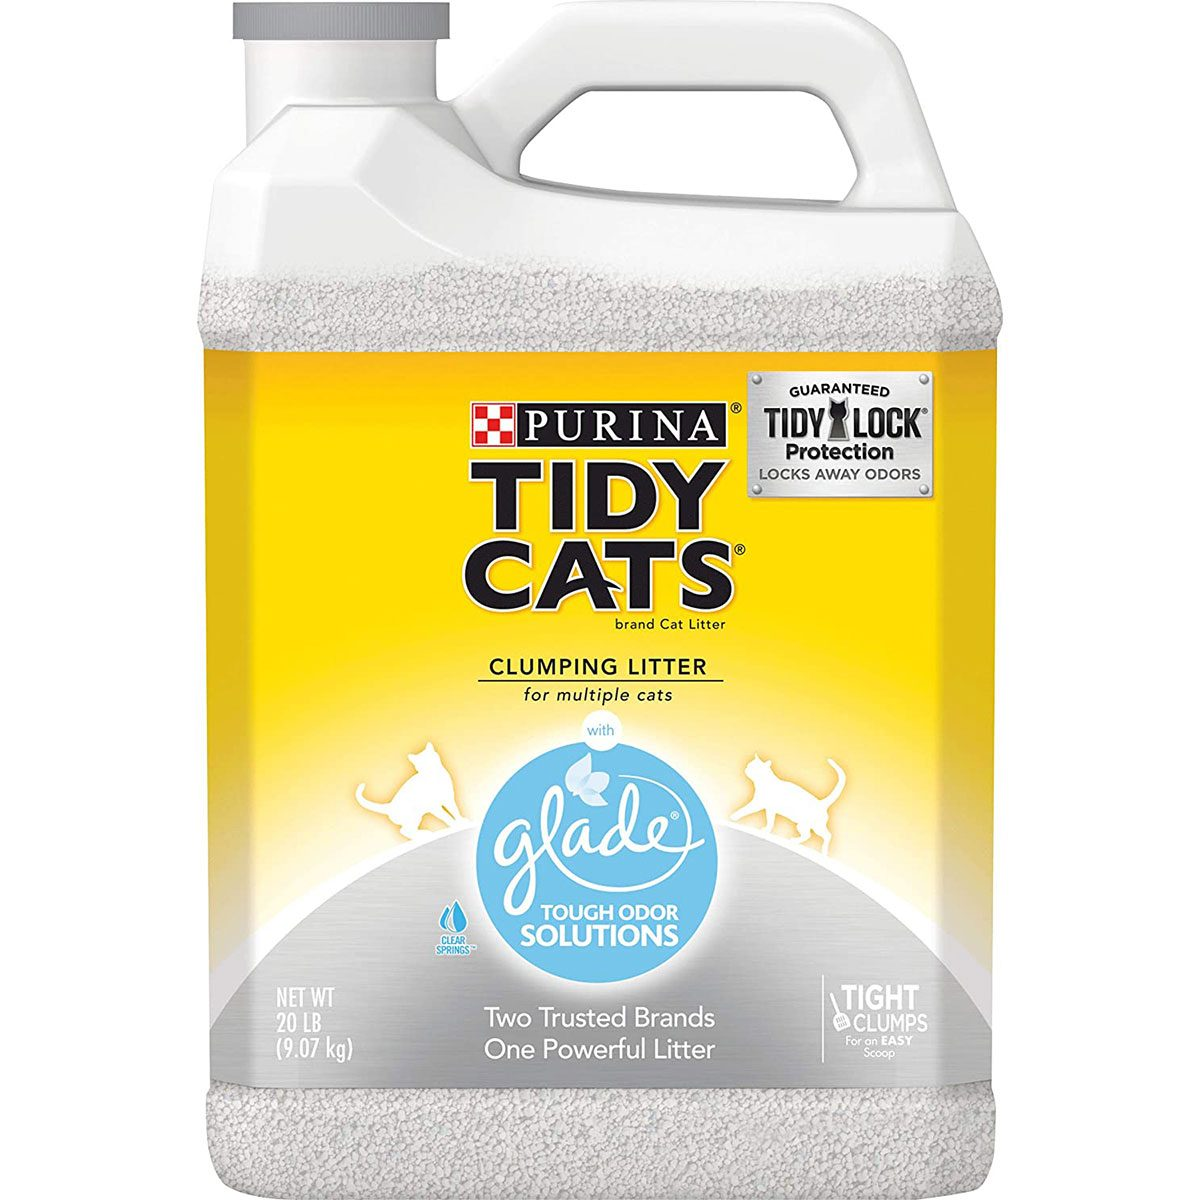 Bottle of Tidy Cats litter